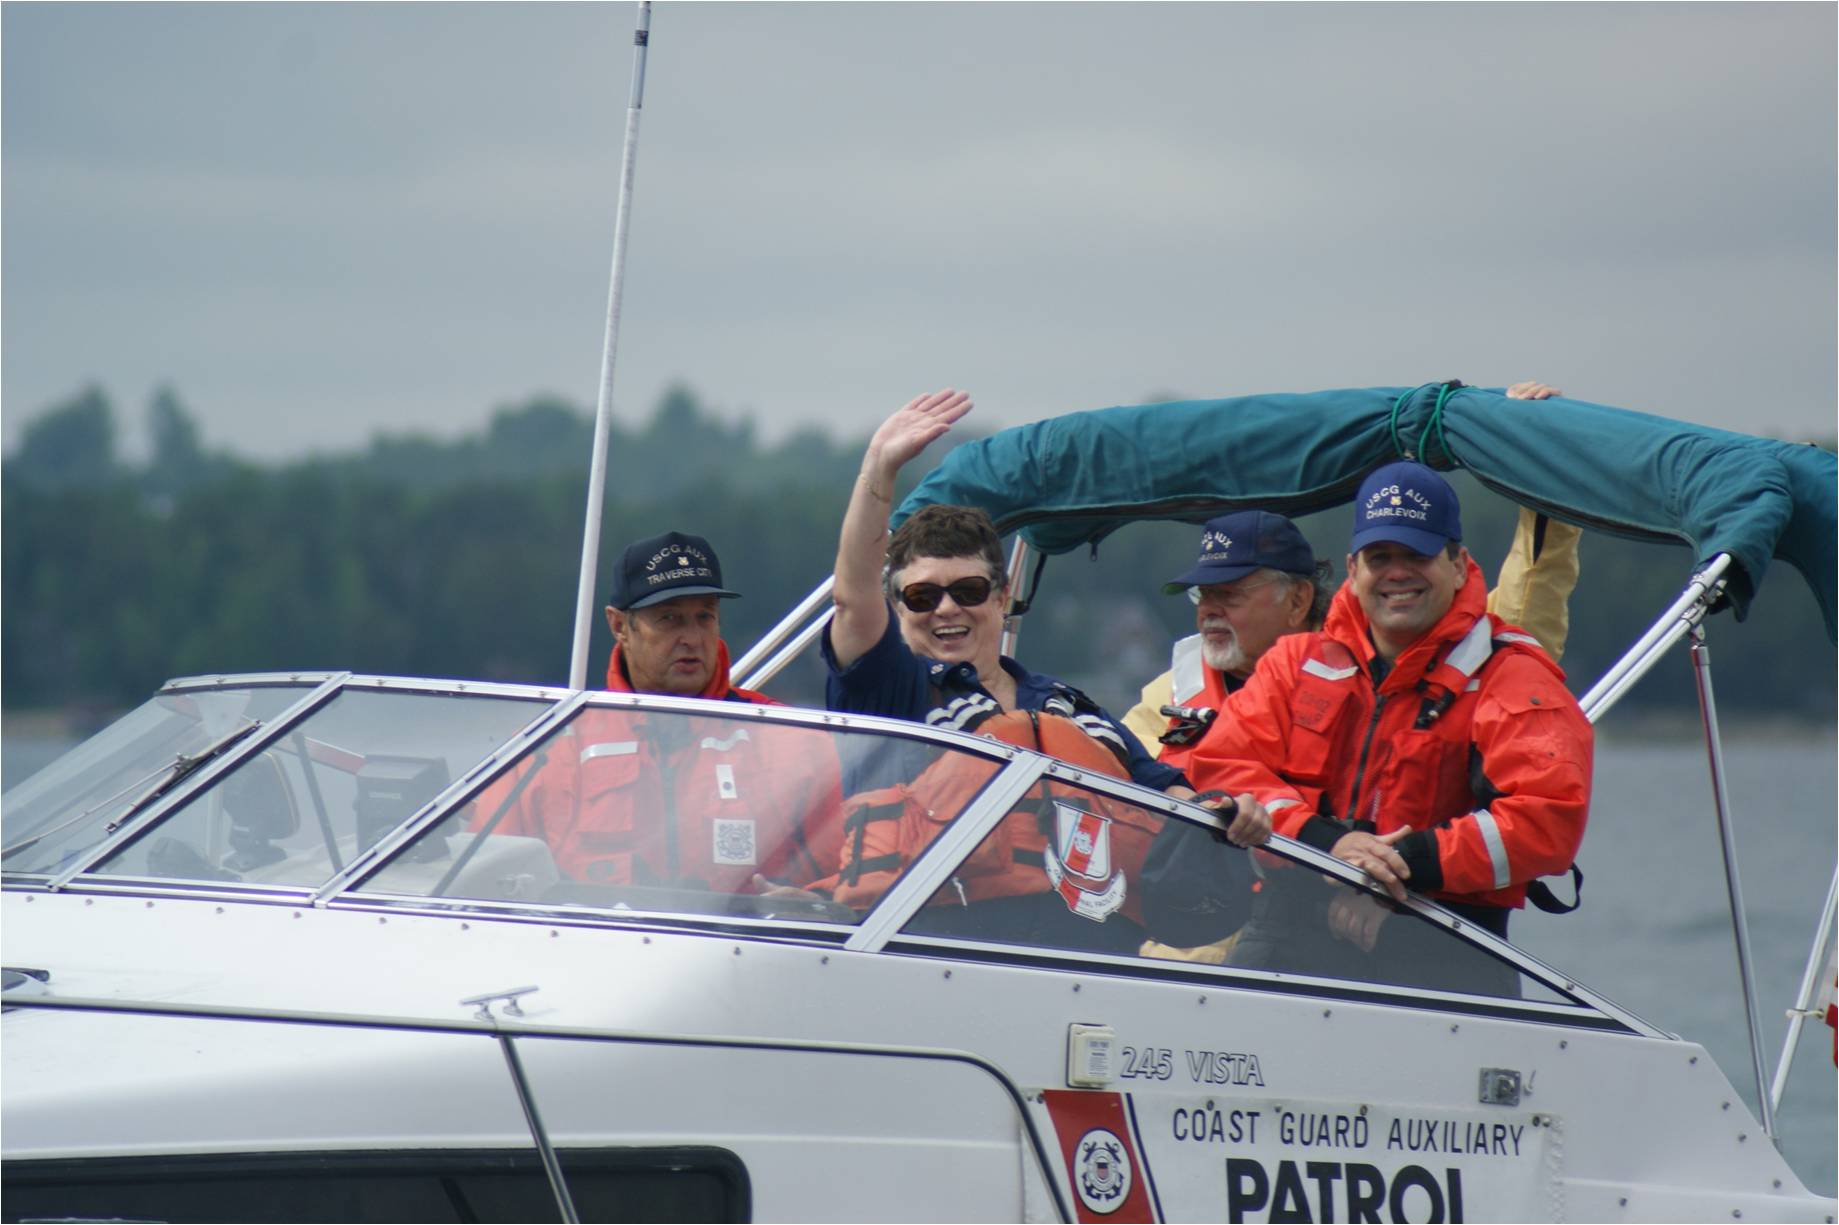 A Group of people on a Coat Guard Auxiliary Patrol Boat  in orange life jackets waving while enjoying the ride.